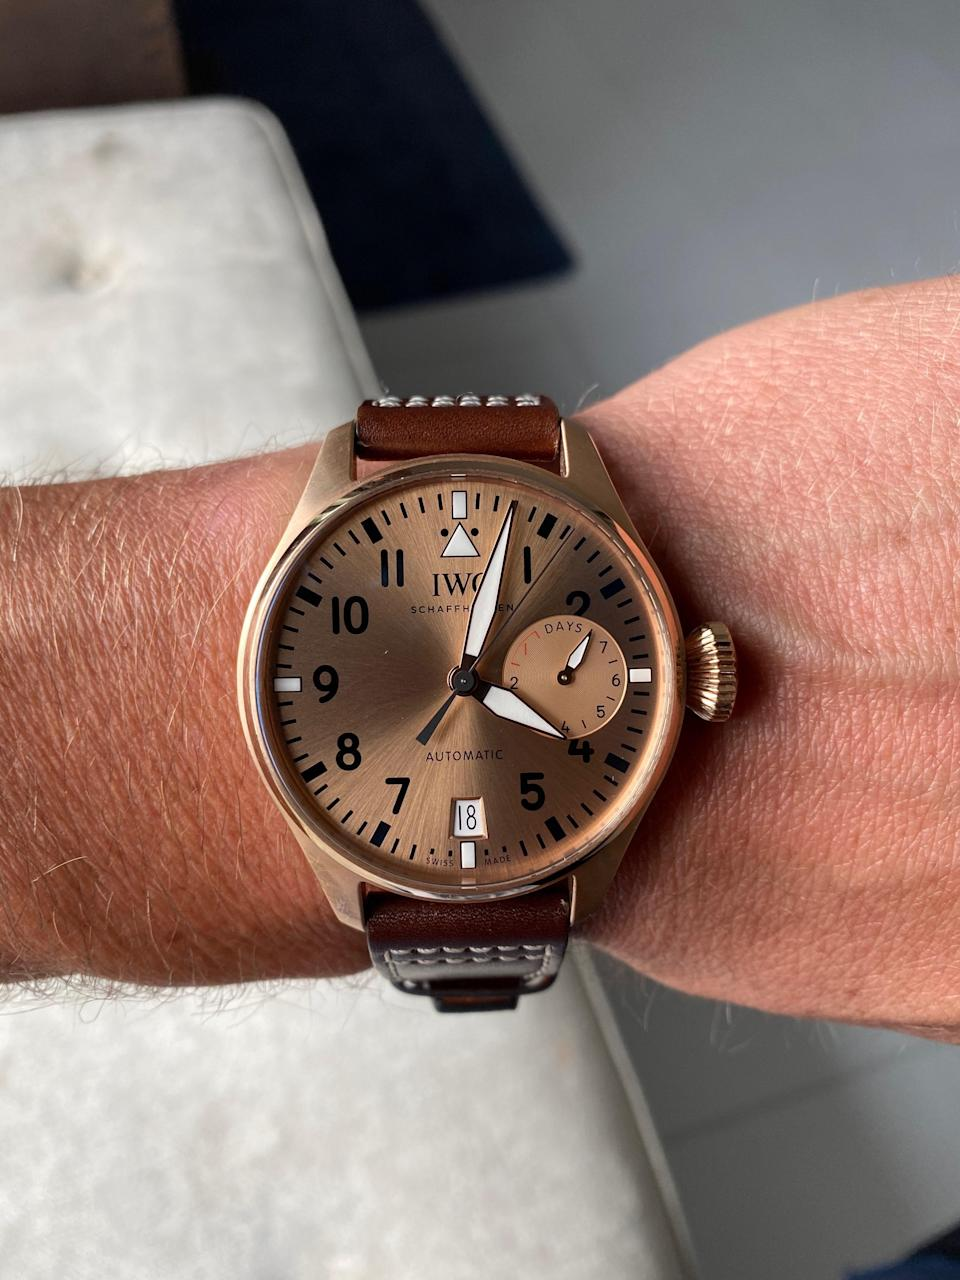 """<div class=""""caption""""> The one-of-one IWC Big Pilot's watch that Johann Rupert gave Tom Brady to commemorate his Super Bowl 51 victory. </div>"""